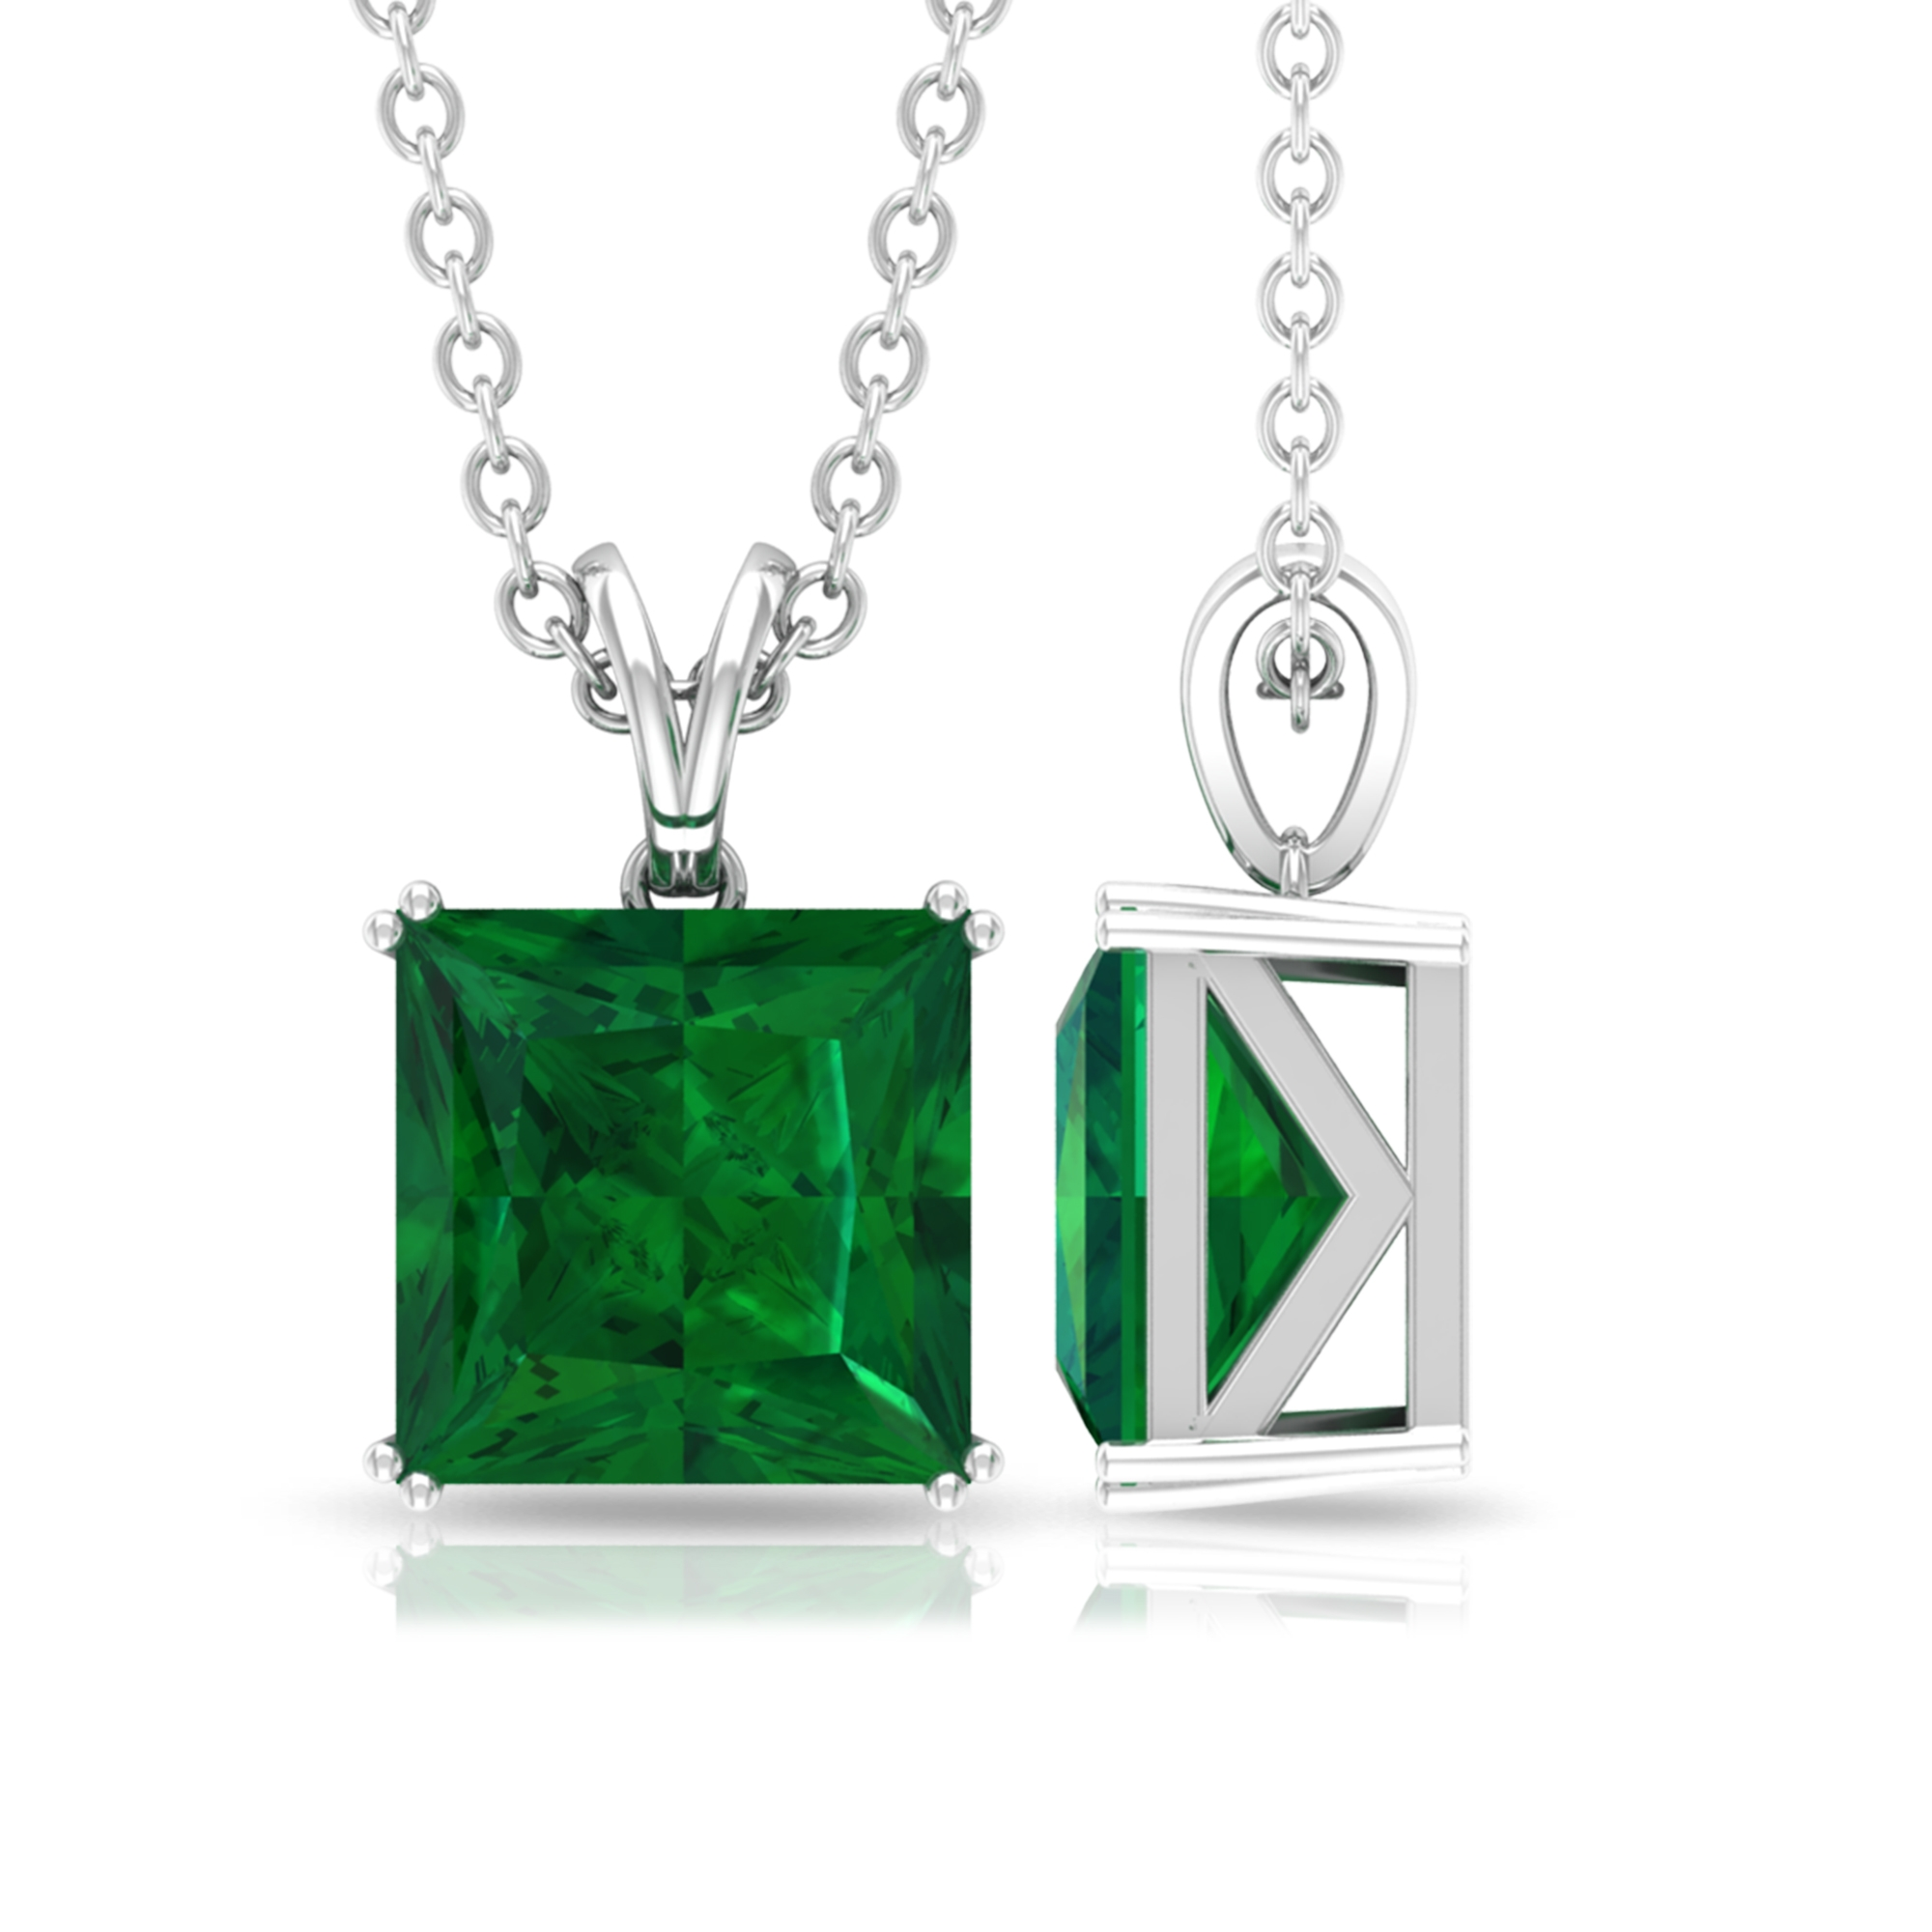 7 MM Princess Cut Emerald Solitaire Pendant in Double Prong Setting with Rabbit Ear Bail